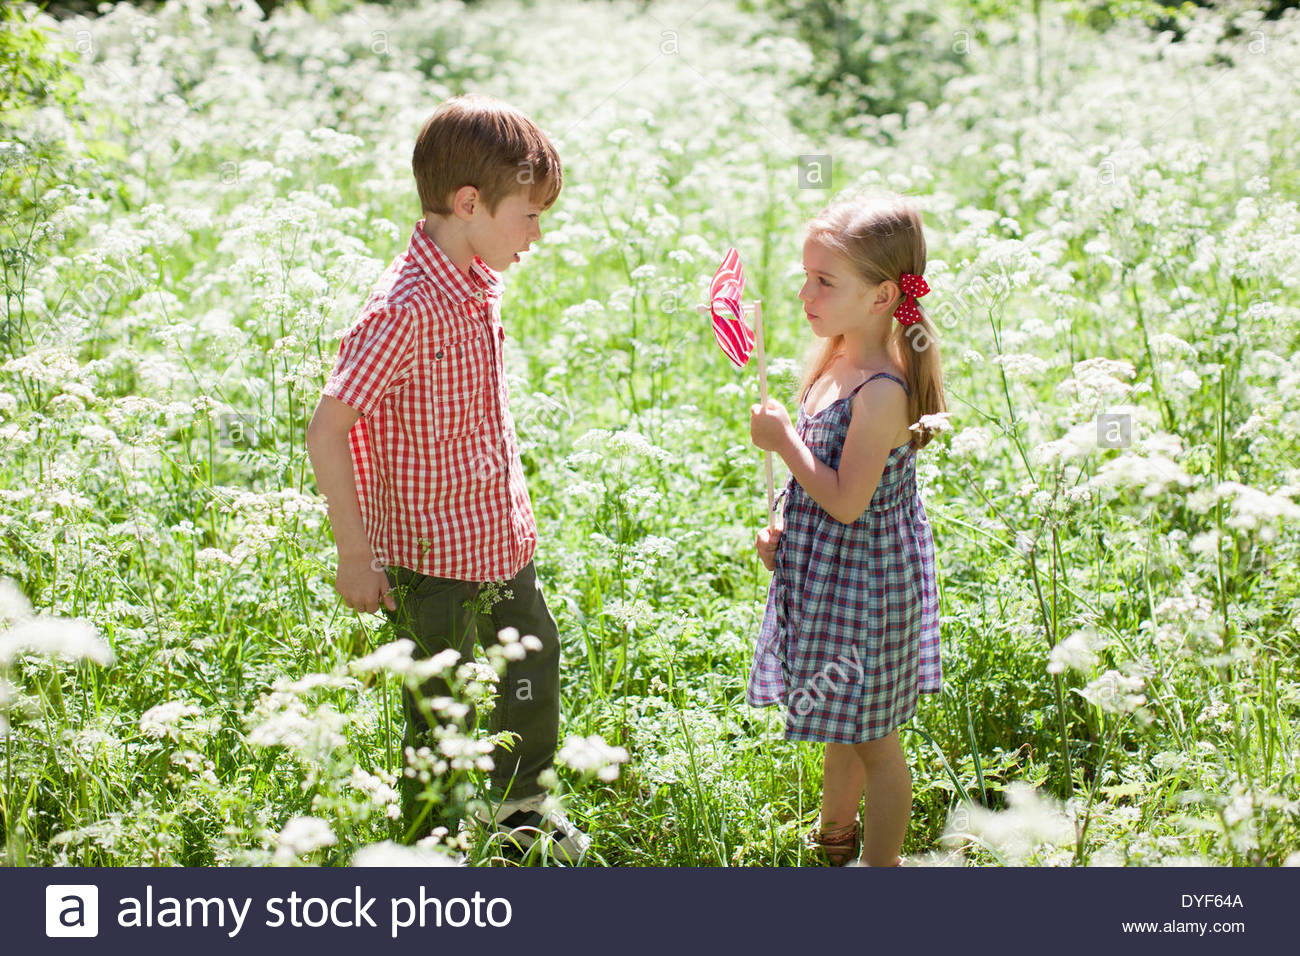 Children playing with pinwheel in field of flowers - Stock Image